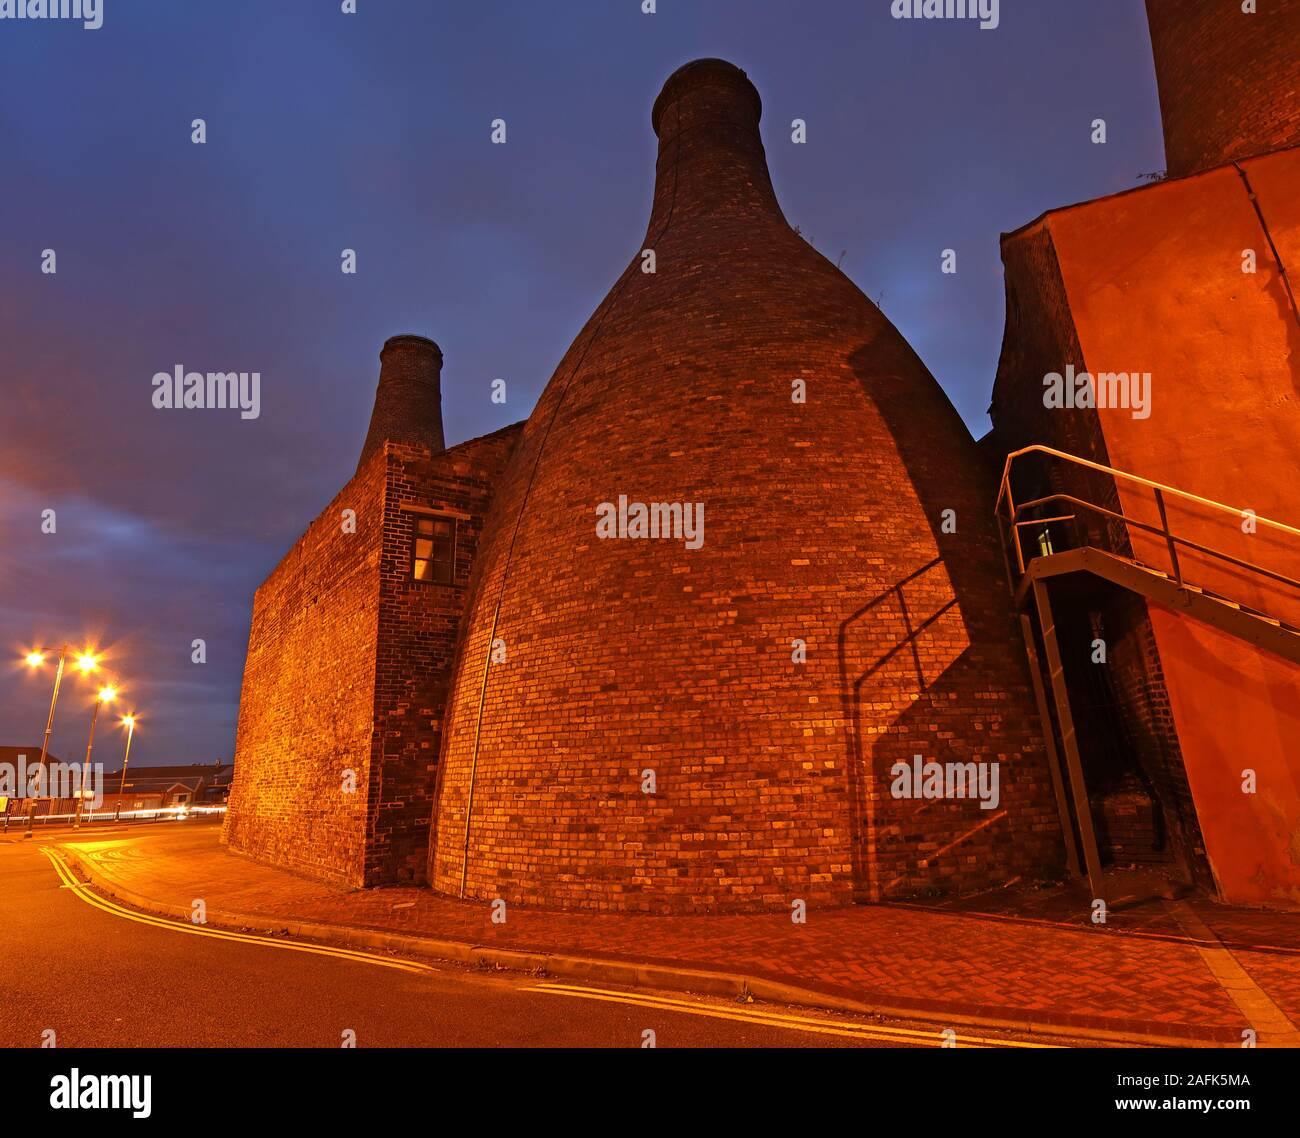 HotpixUK,@HotpixUK,GoTonySmith,legacy,Stoke,ST3,casualty,Gladstone Pottery Museum,Pottery Museum,Gladstone Museum,Gladstone,decline,old industries,Brexit Voting,old industry,history,lost industries,Staffs,industries,Staffordshire,industry,factory,night,dusk,Thomas Poole & Gladstone China Ltd,china industry,Uttoxeter Rd,brick,Roslyn pottery,biscuit ovens,decline of pottery,potbank,pot-bank,pot banks,pottery factory,bone china